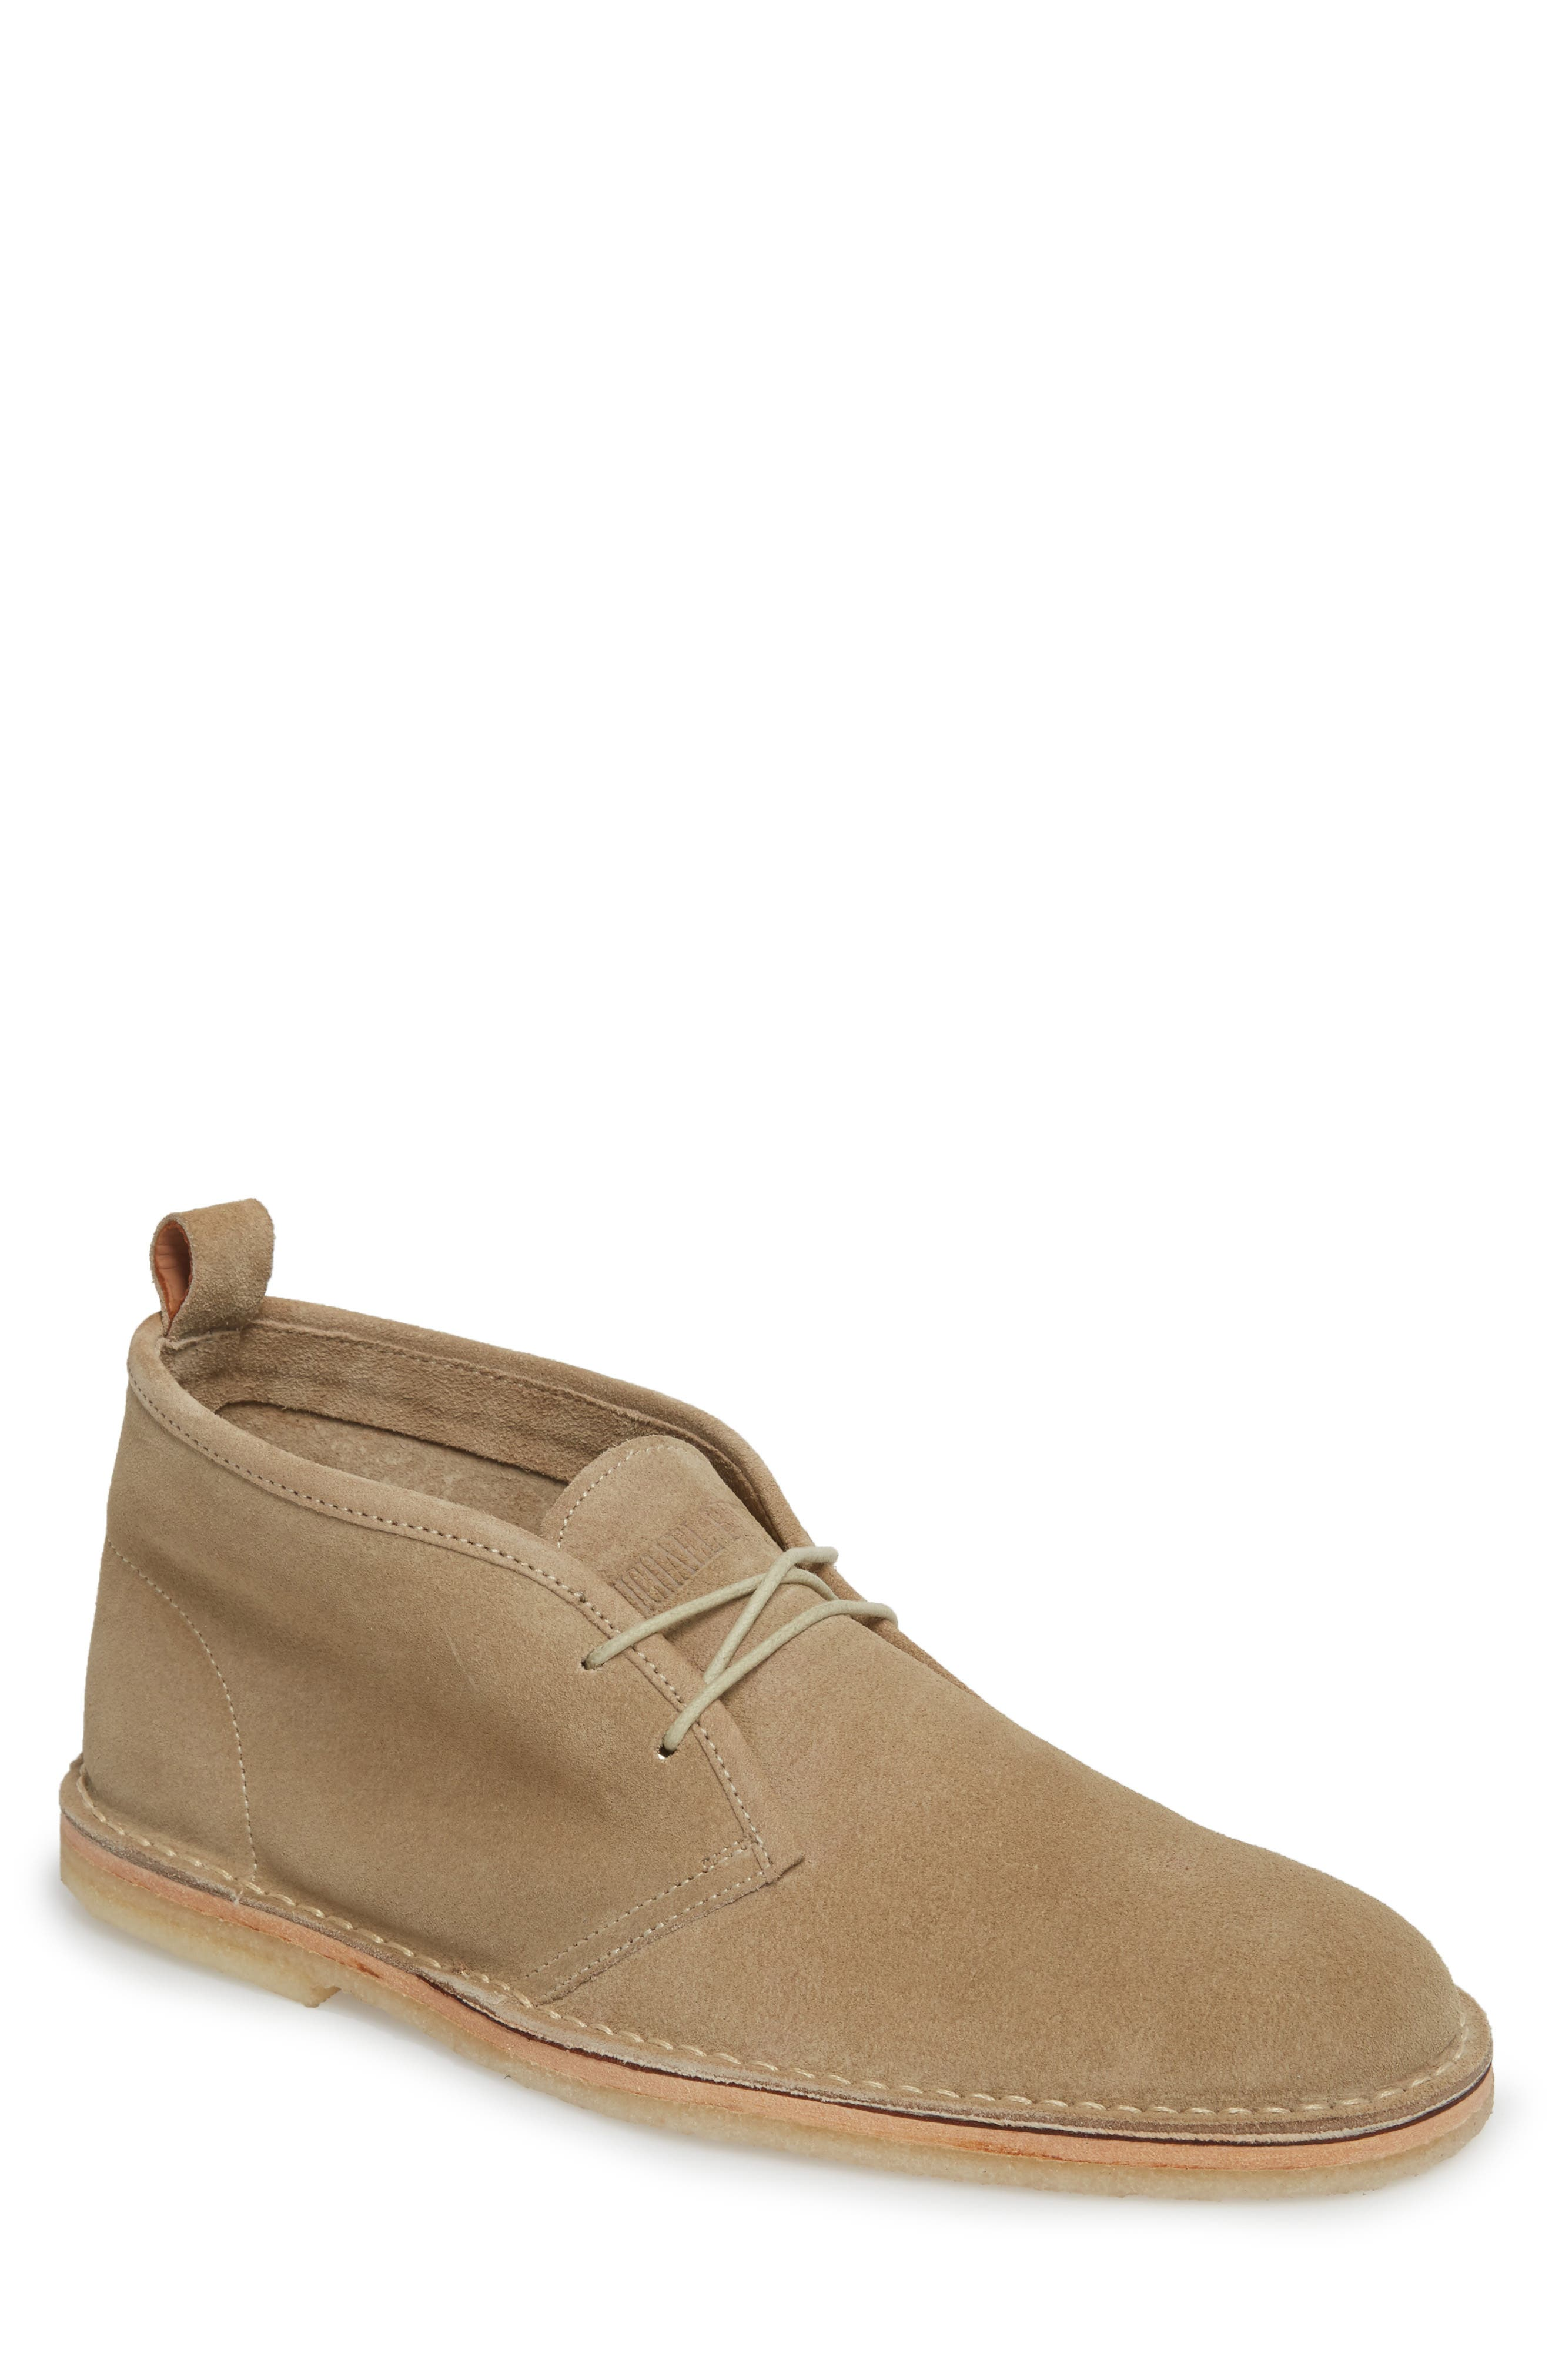 Stitchout Chukka Boot,                         Main,                         color, Sand Suede